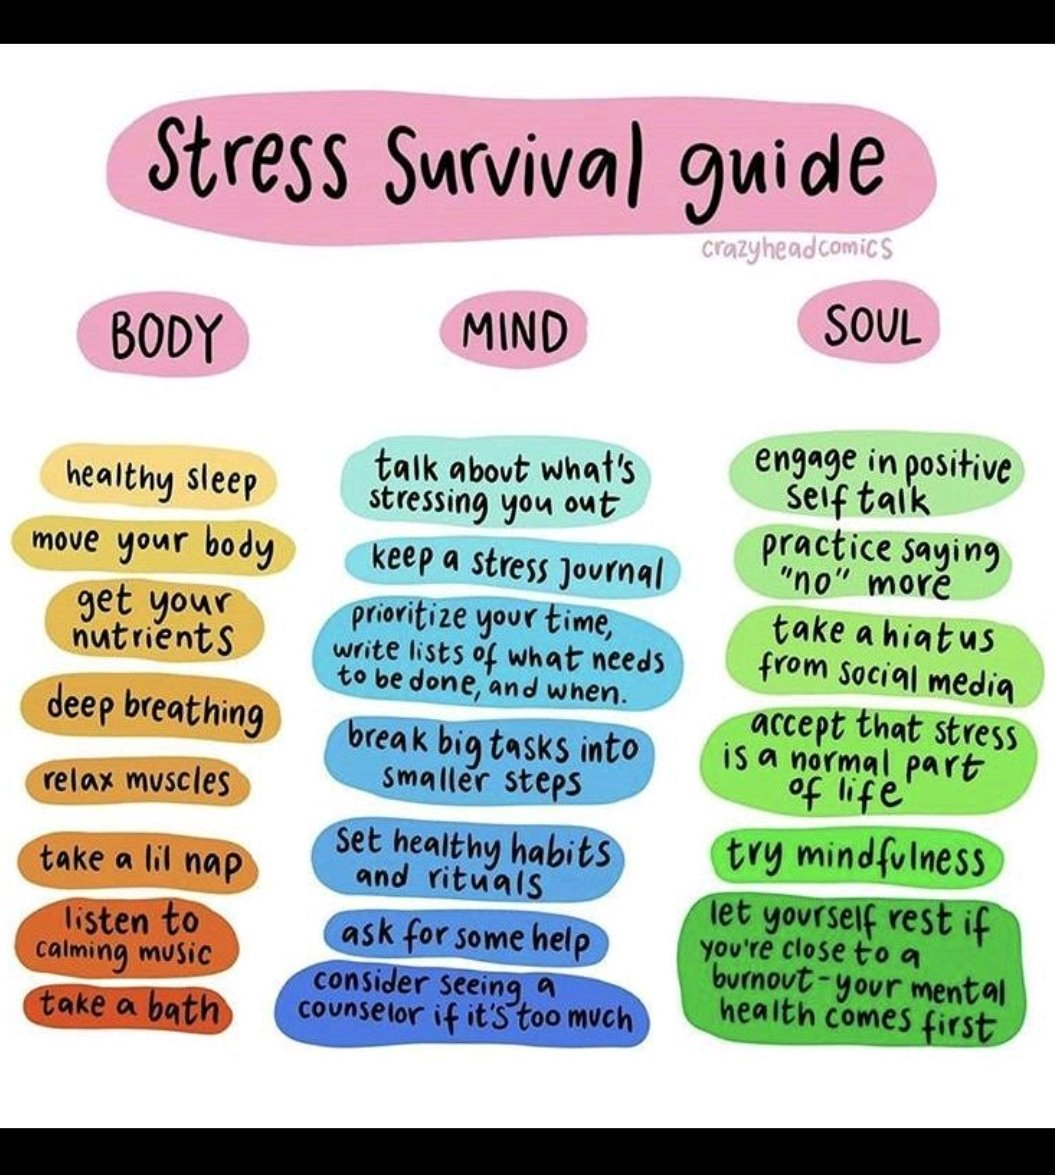 Stress survival guide - Loving the simplicity x #stress #mentalhealth #sleeping #positivitypic.twitter.com/SSn3E1S0Hs